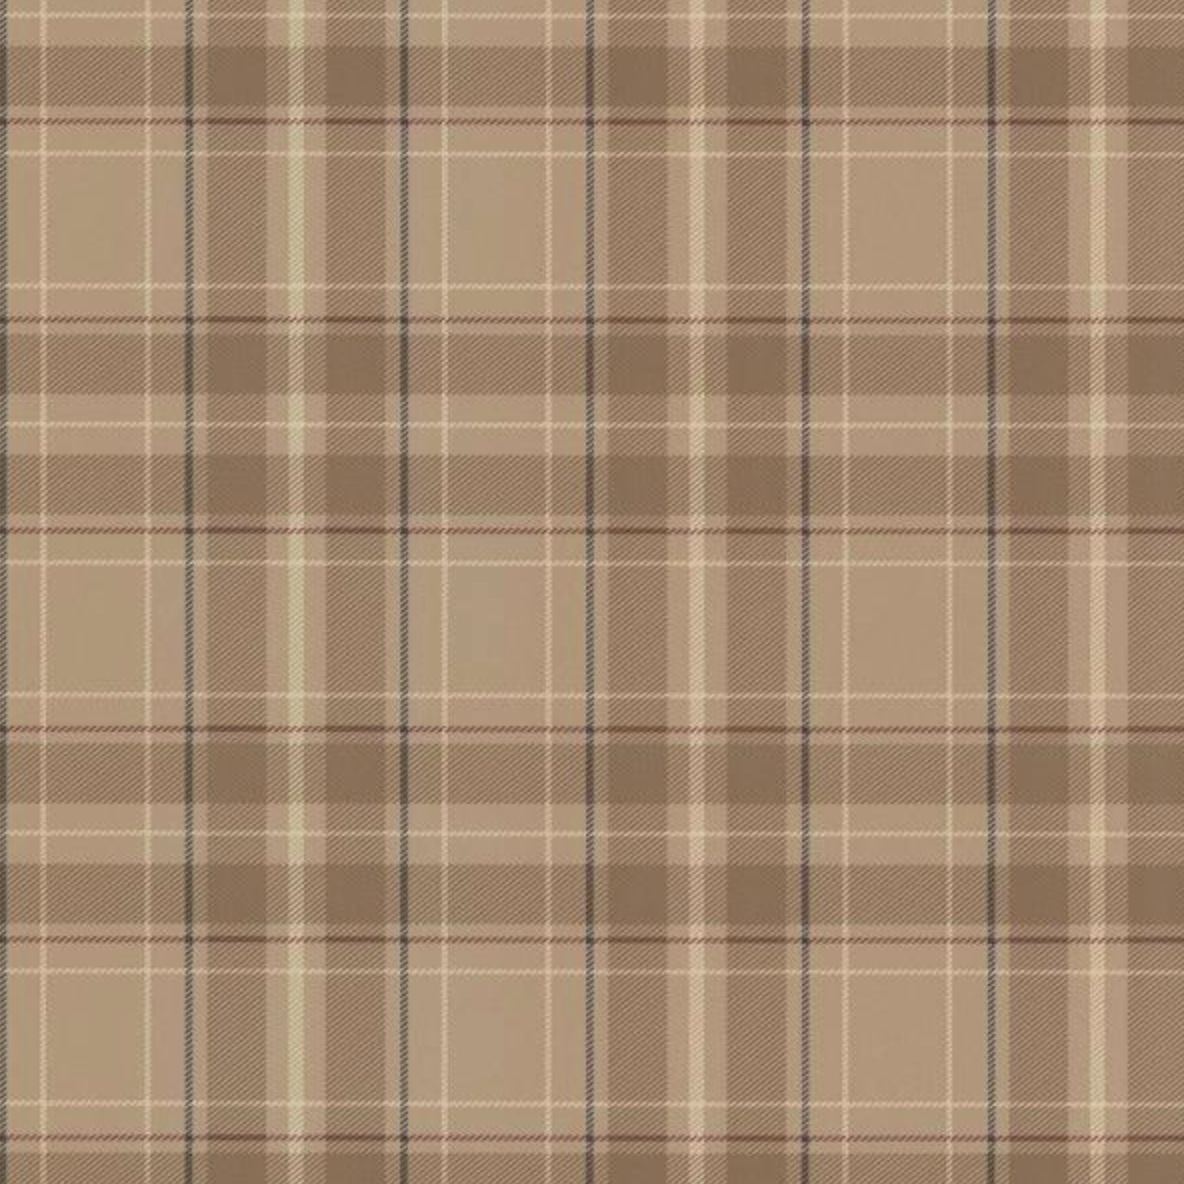 Caledonia Beige Plaid Beige Wallpaper from Home Depot